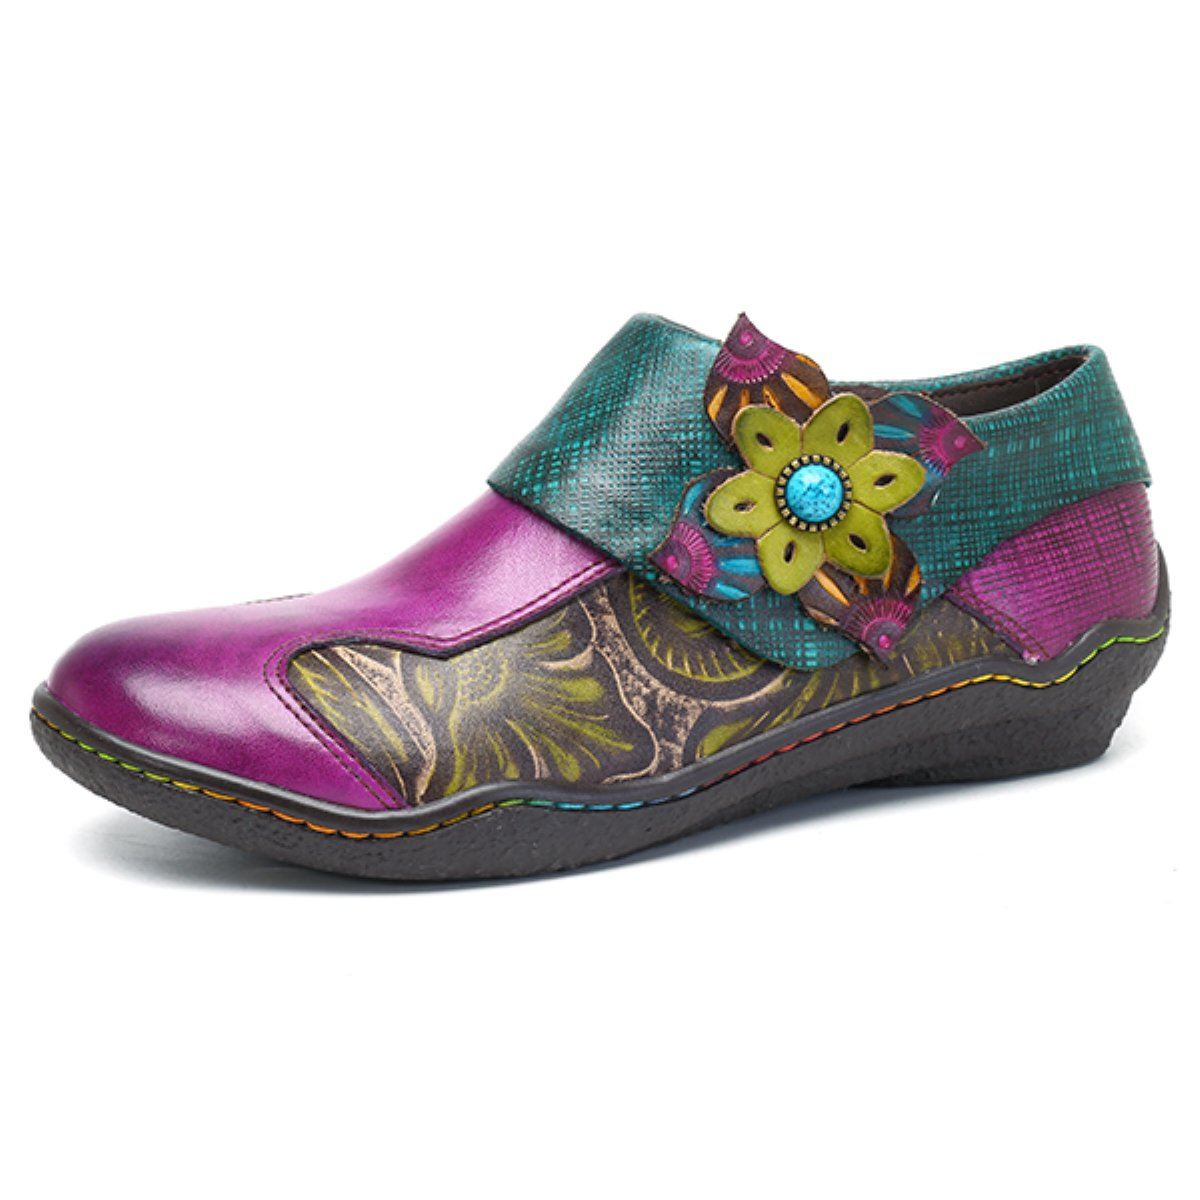 Socofy Oxford Leather Shoes,Women's Handmade Printing Splicing Plant Pattern Hook Loop Flat Vintage Shoes Claret 8 B(M) US